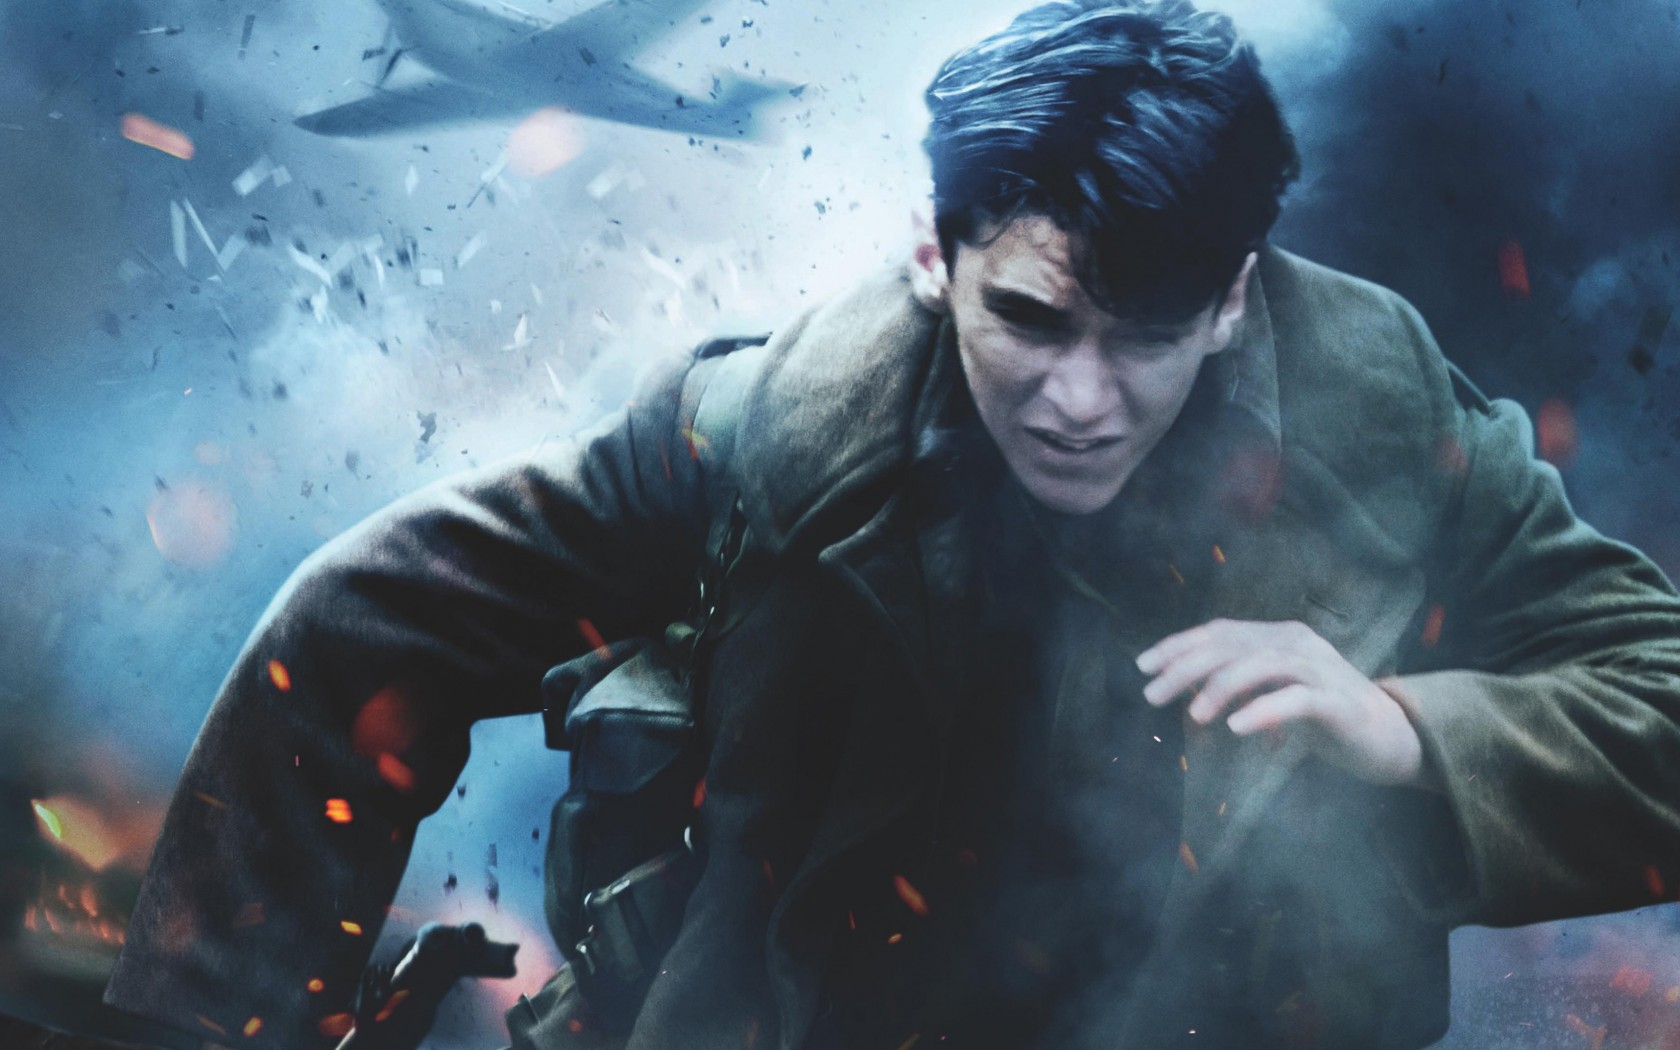 Iphone 5 Space Wallpaper Hd Fionn Whitehead In Dunkirk 2017 Wallpapers Hd Wallpapers